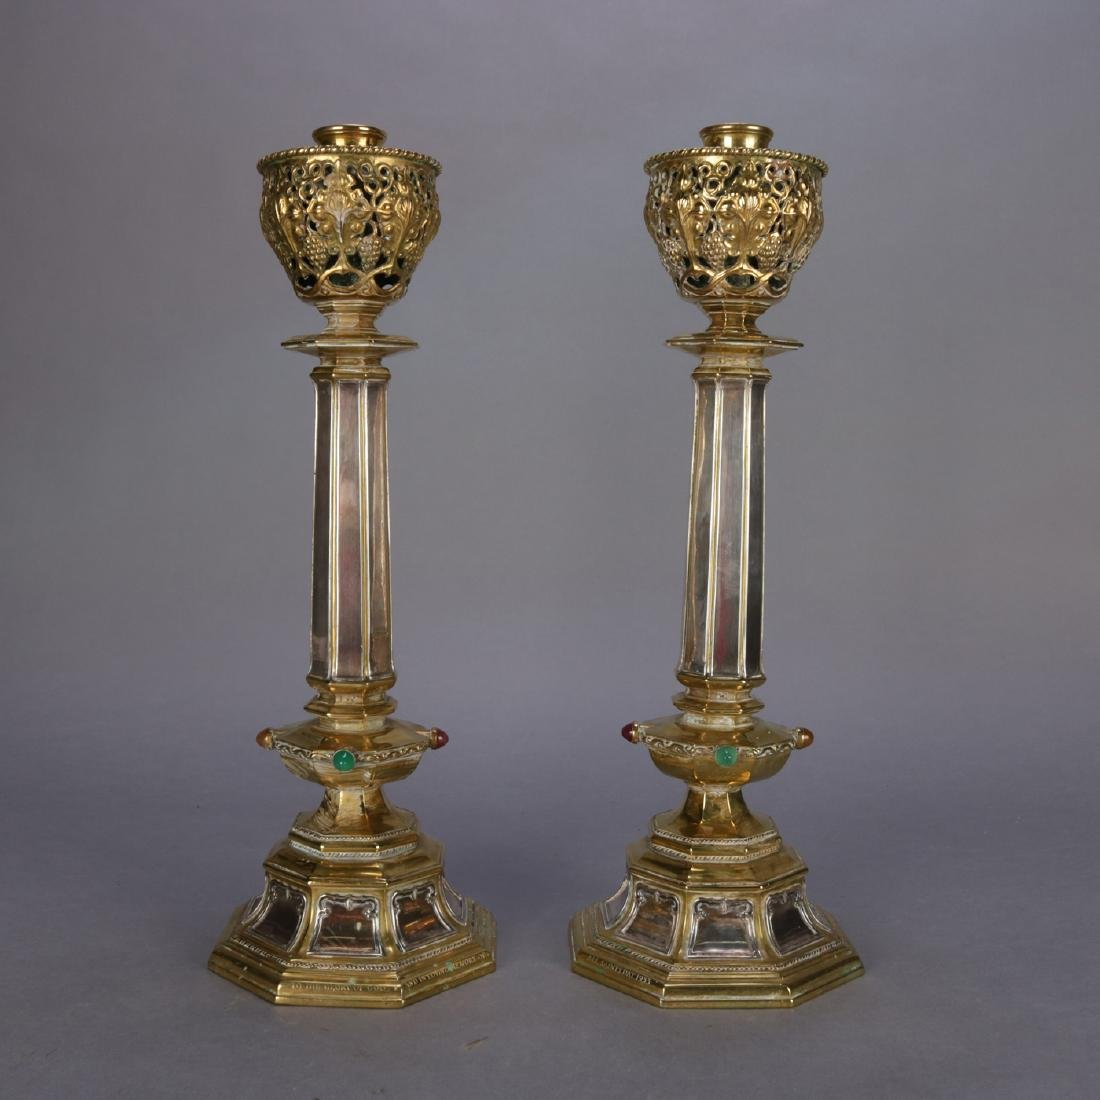 Antique Brass & Silver Jeweled Ceremonial Candle Sticks - 3